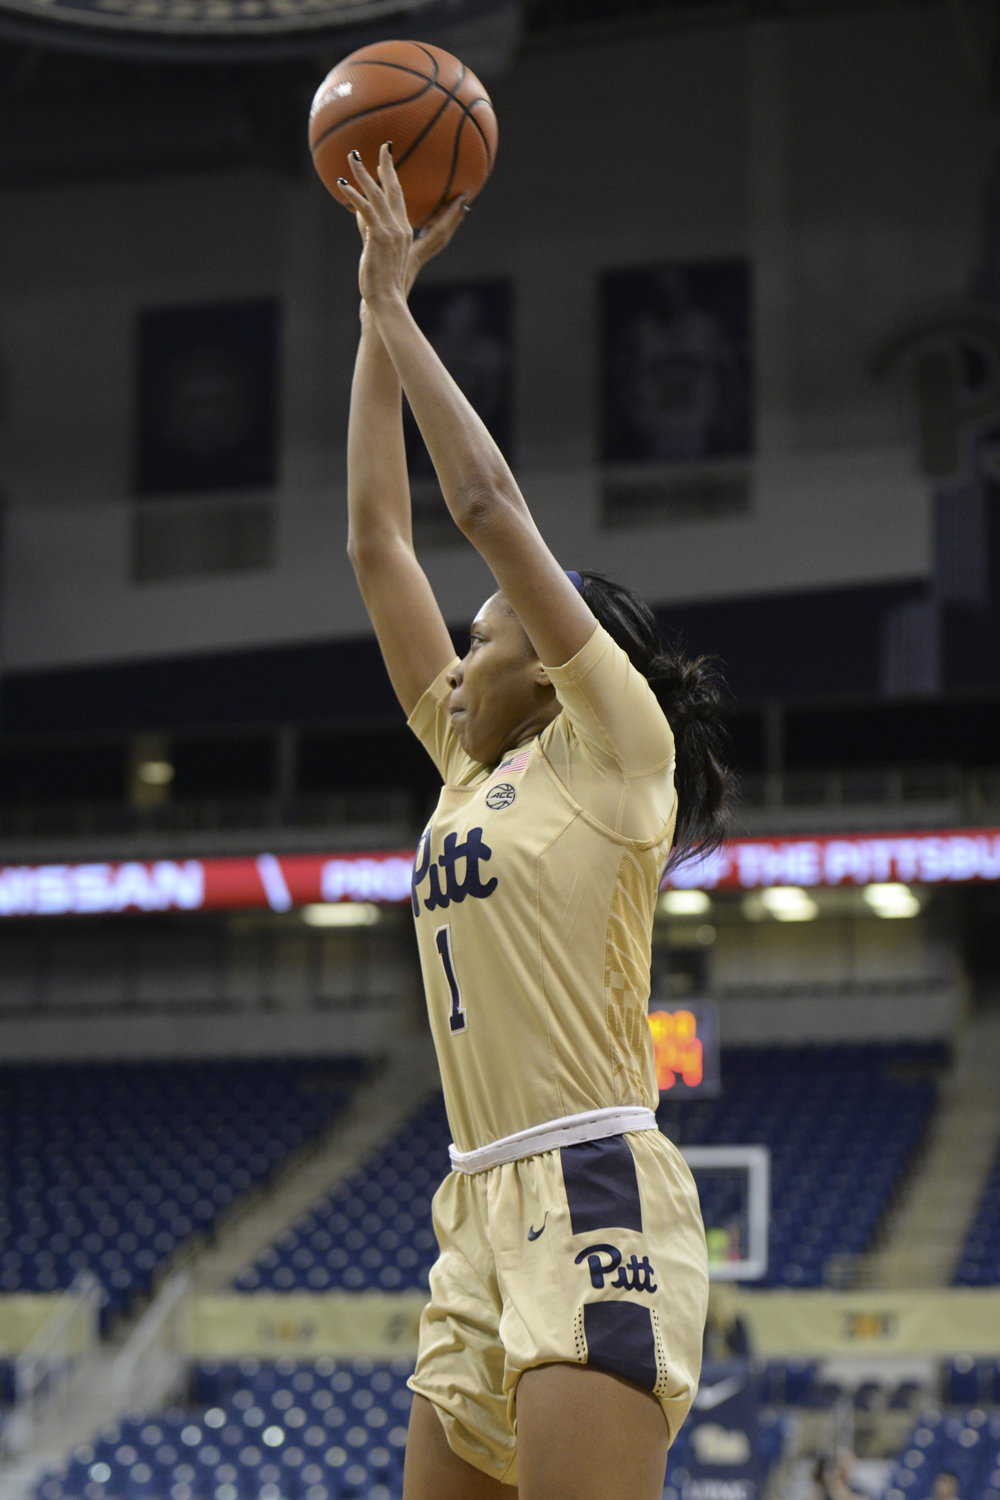 Then-junior Danielle Garven takes a shot during a game against the Syracuse Oranges in February.